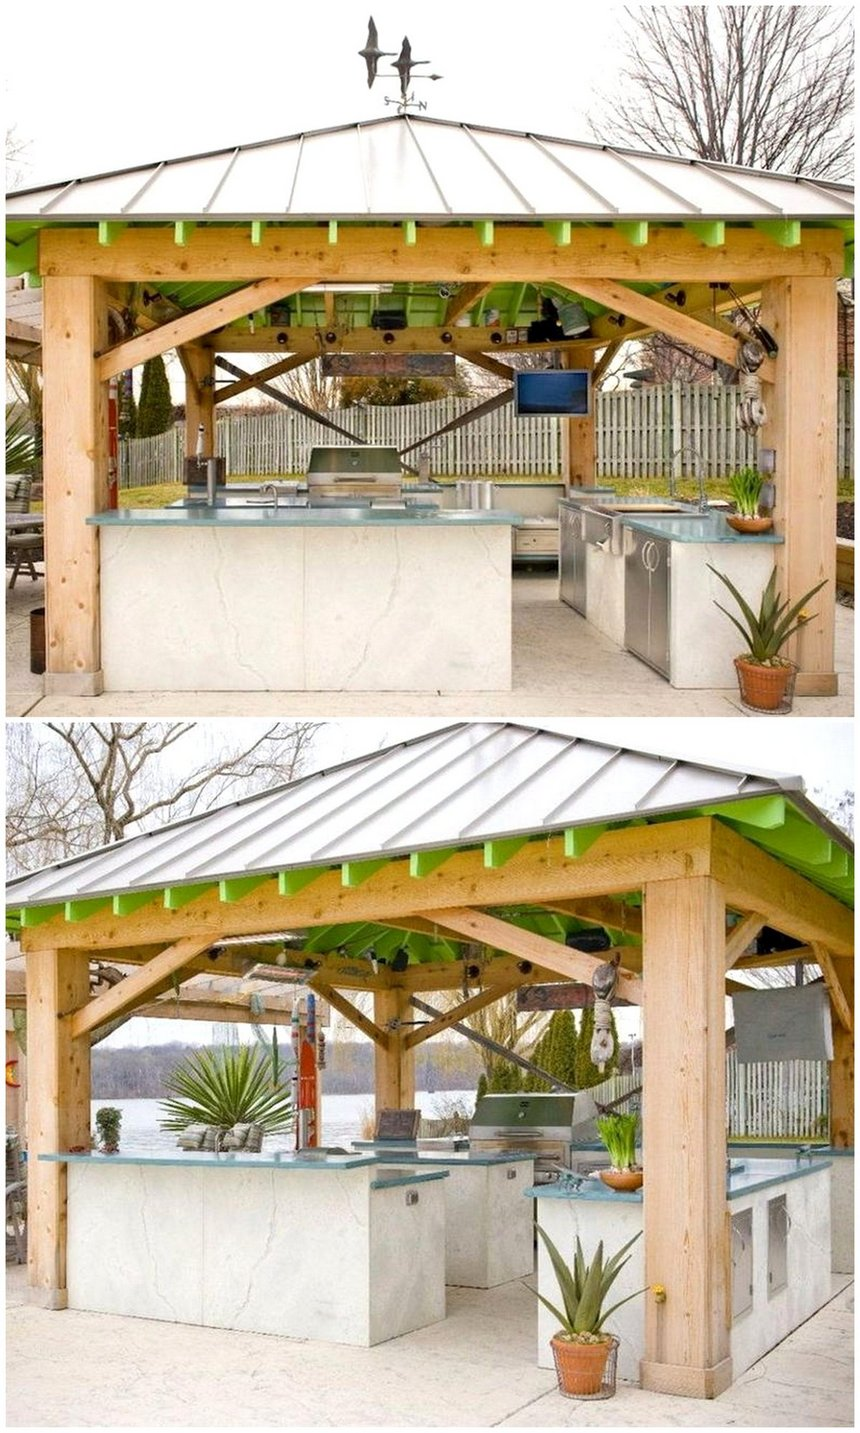 gazebo design ideas 0